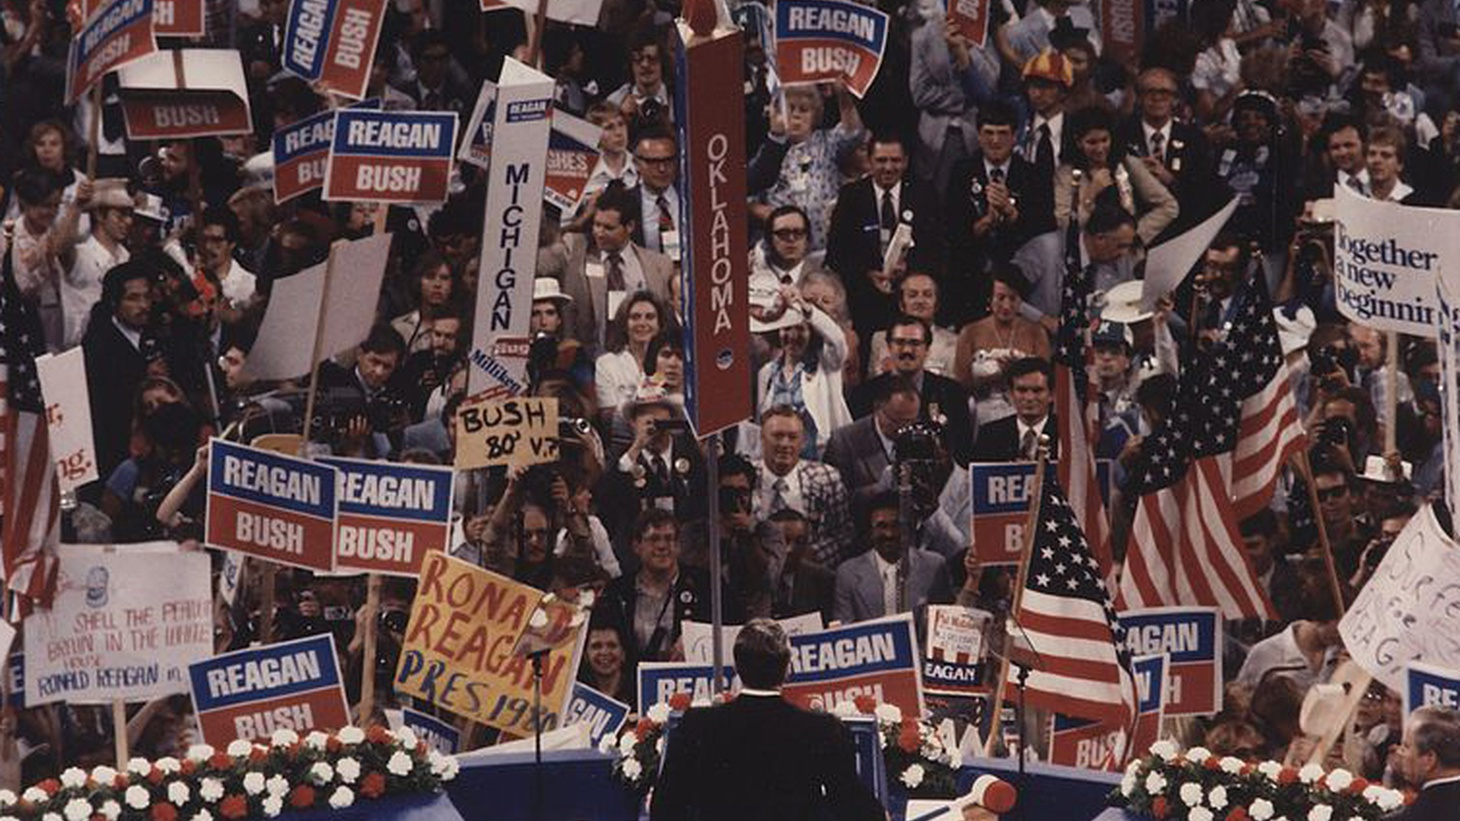 It's been years since the smoke-filled rooms of political conventions chose presidential nominees and the Republicans haven't had a real floor-fight since 1976, but Donald Trump is creating a nightmare scenario for the Republican Party.